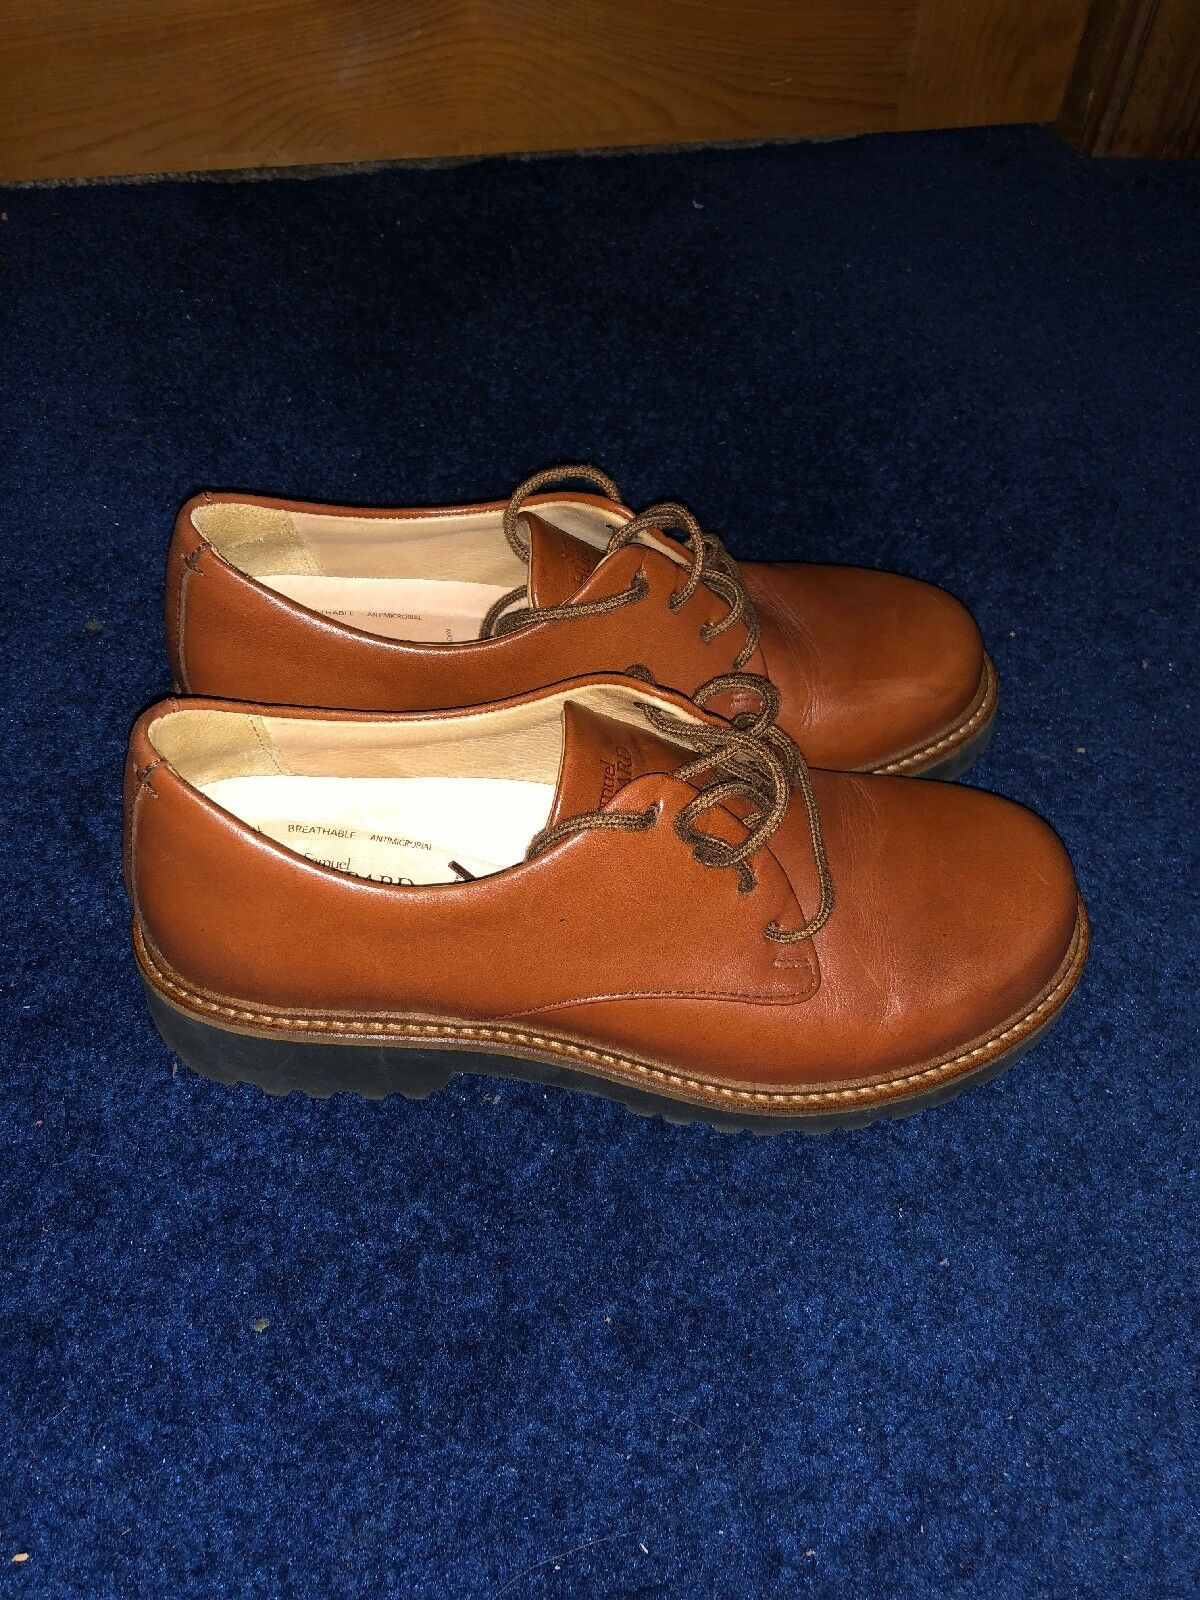 NORDSTROM SAMUEL HUBBARD 'Free Plain Toe Derby' Leather Dress Casual zapatos 7 M